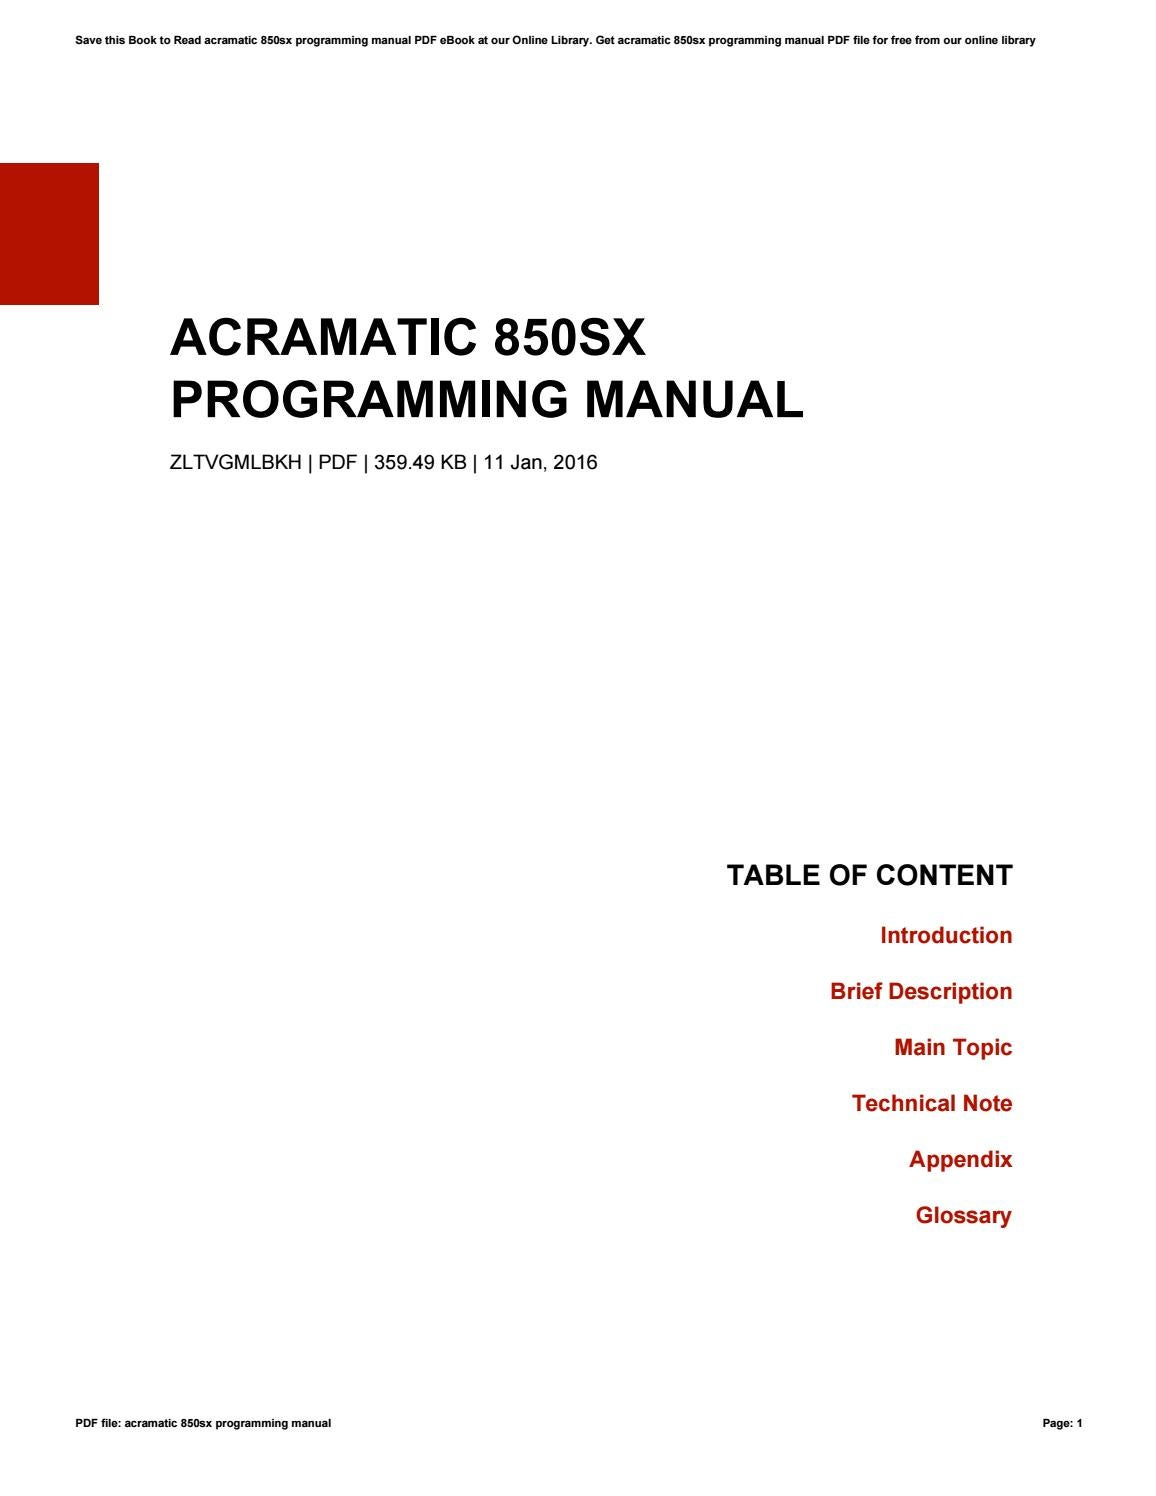 Acramatic 850sx programming manual by JohnRodriguez3156